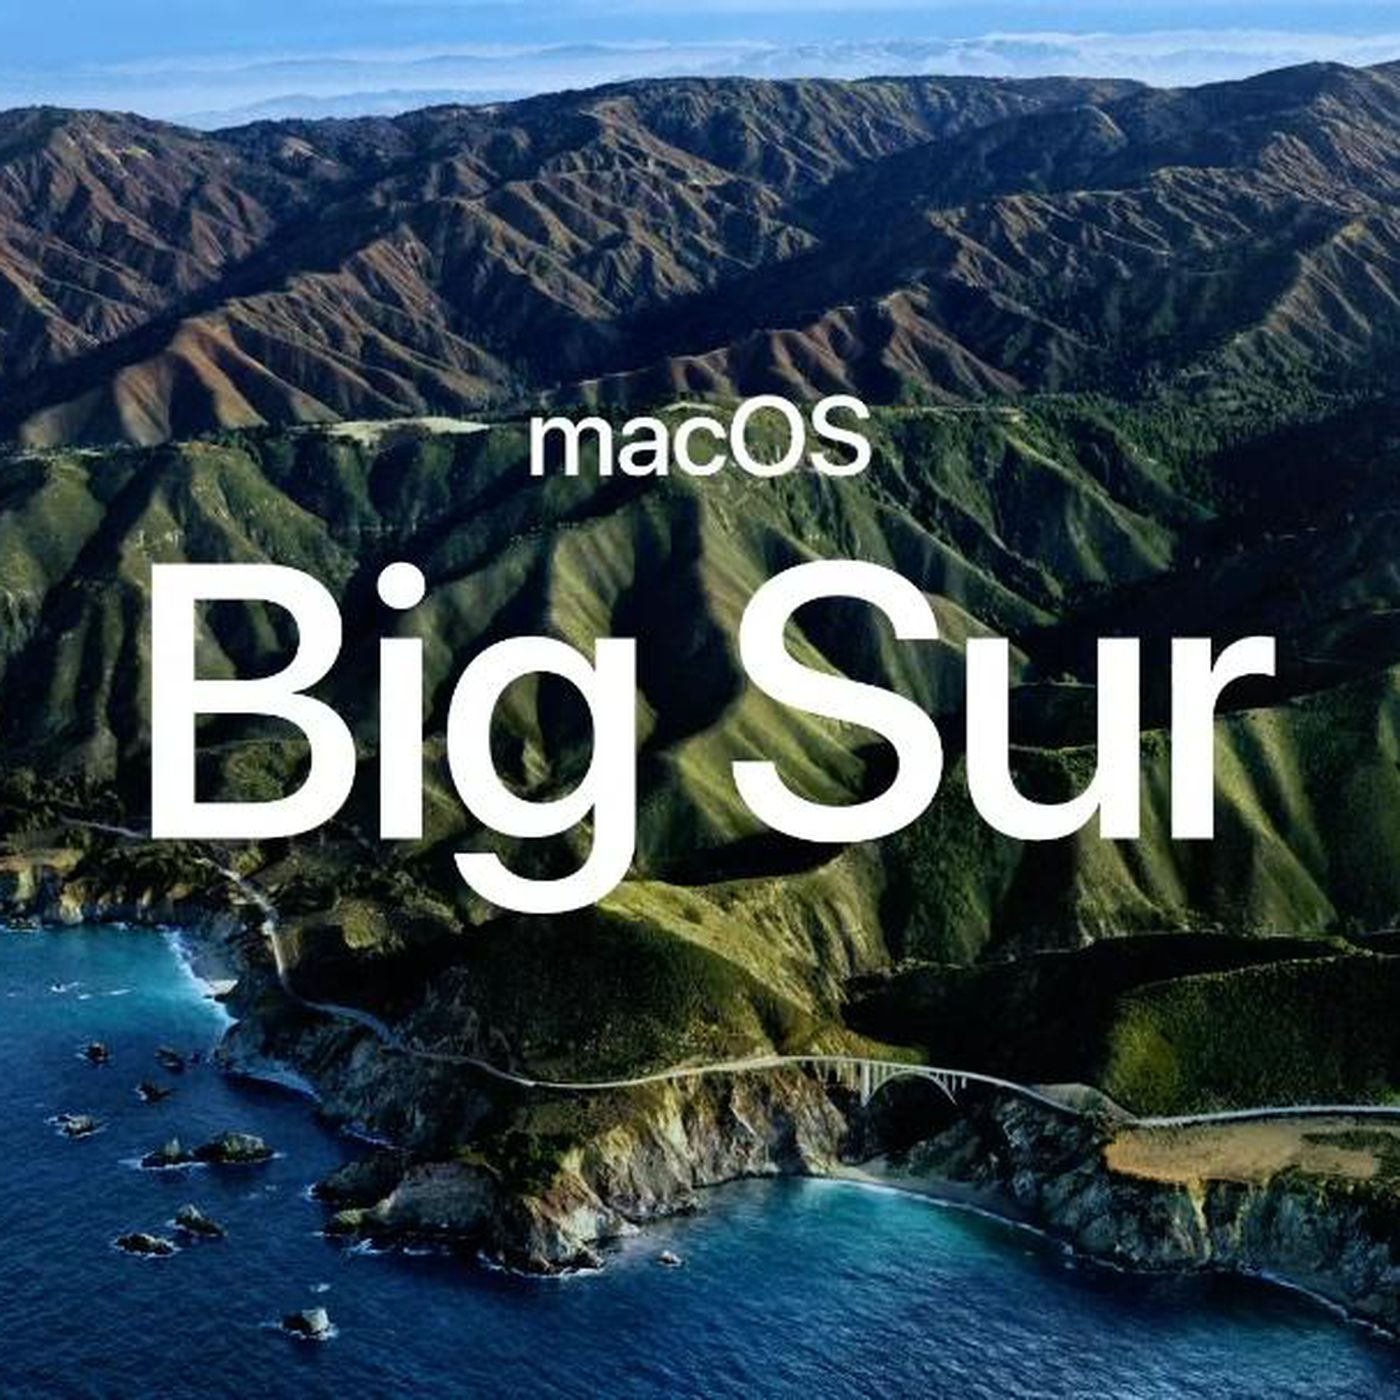 Apple Announces Macos Big Sur With A Brand New Design The Verge